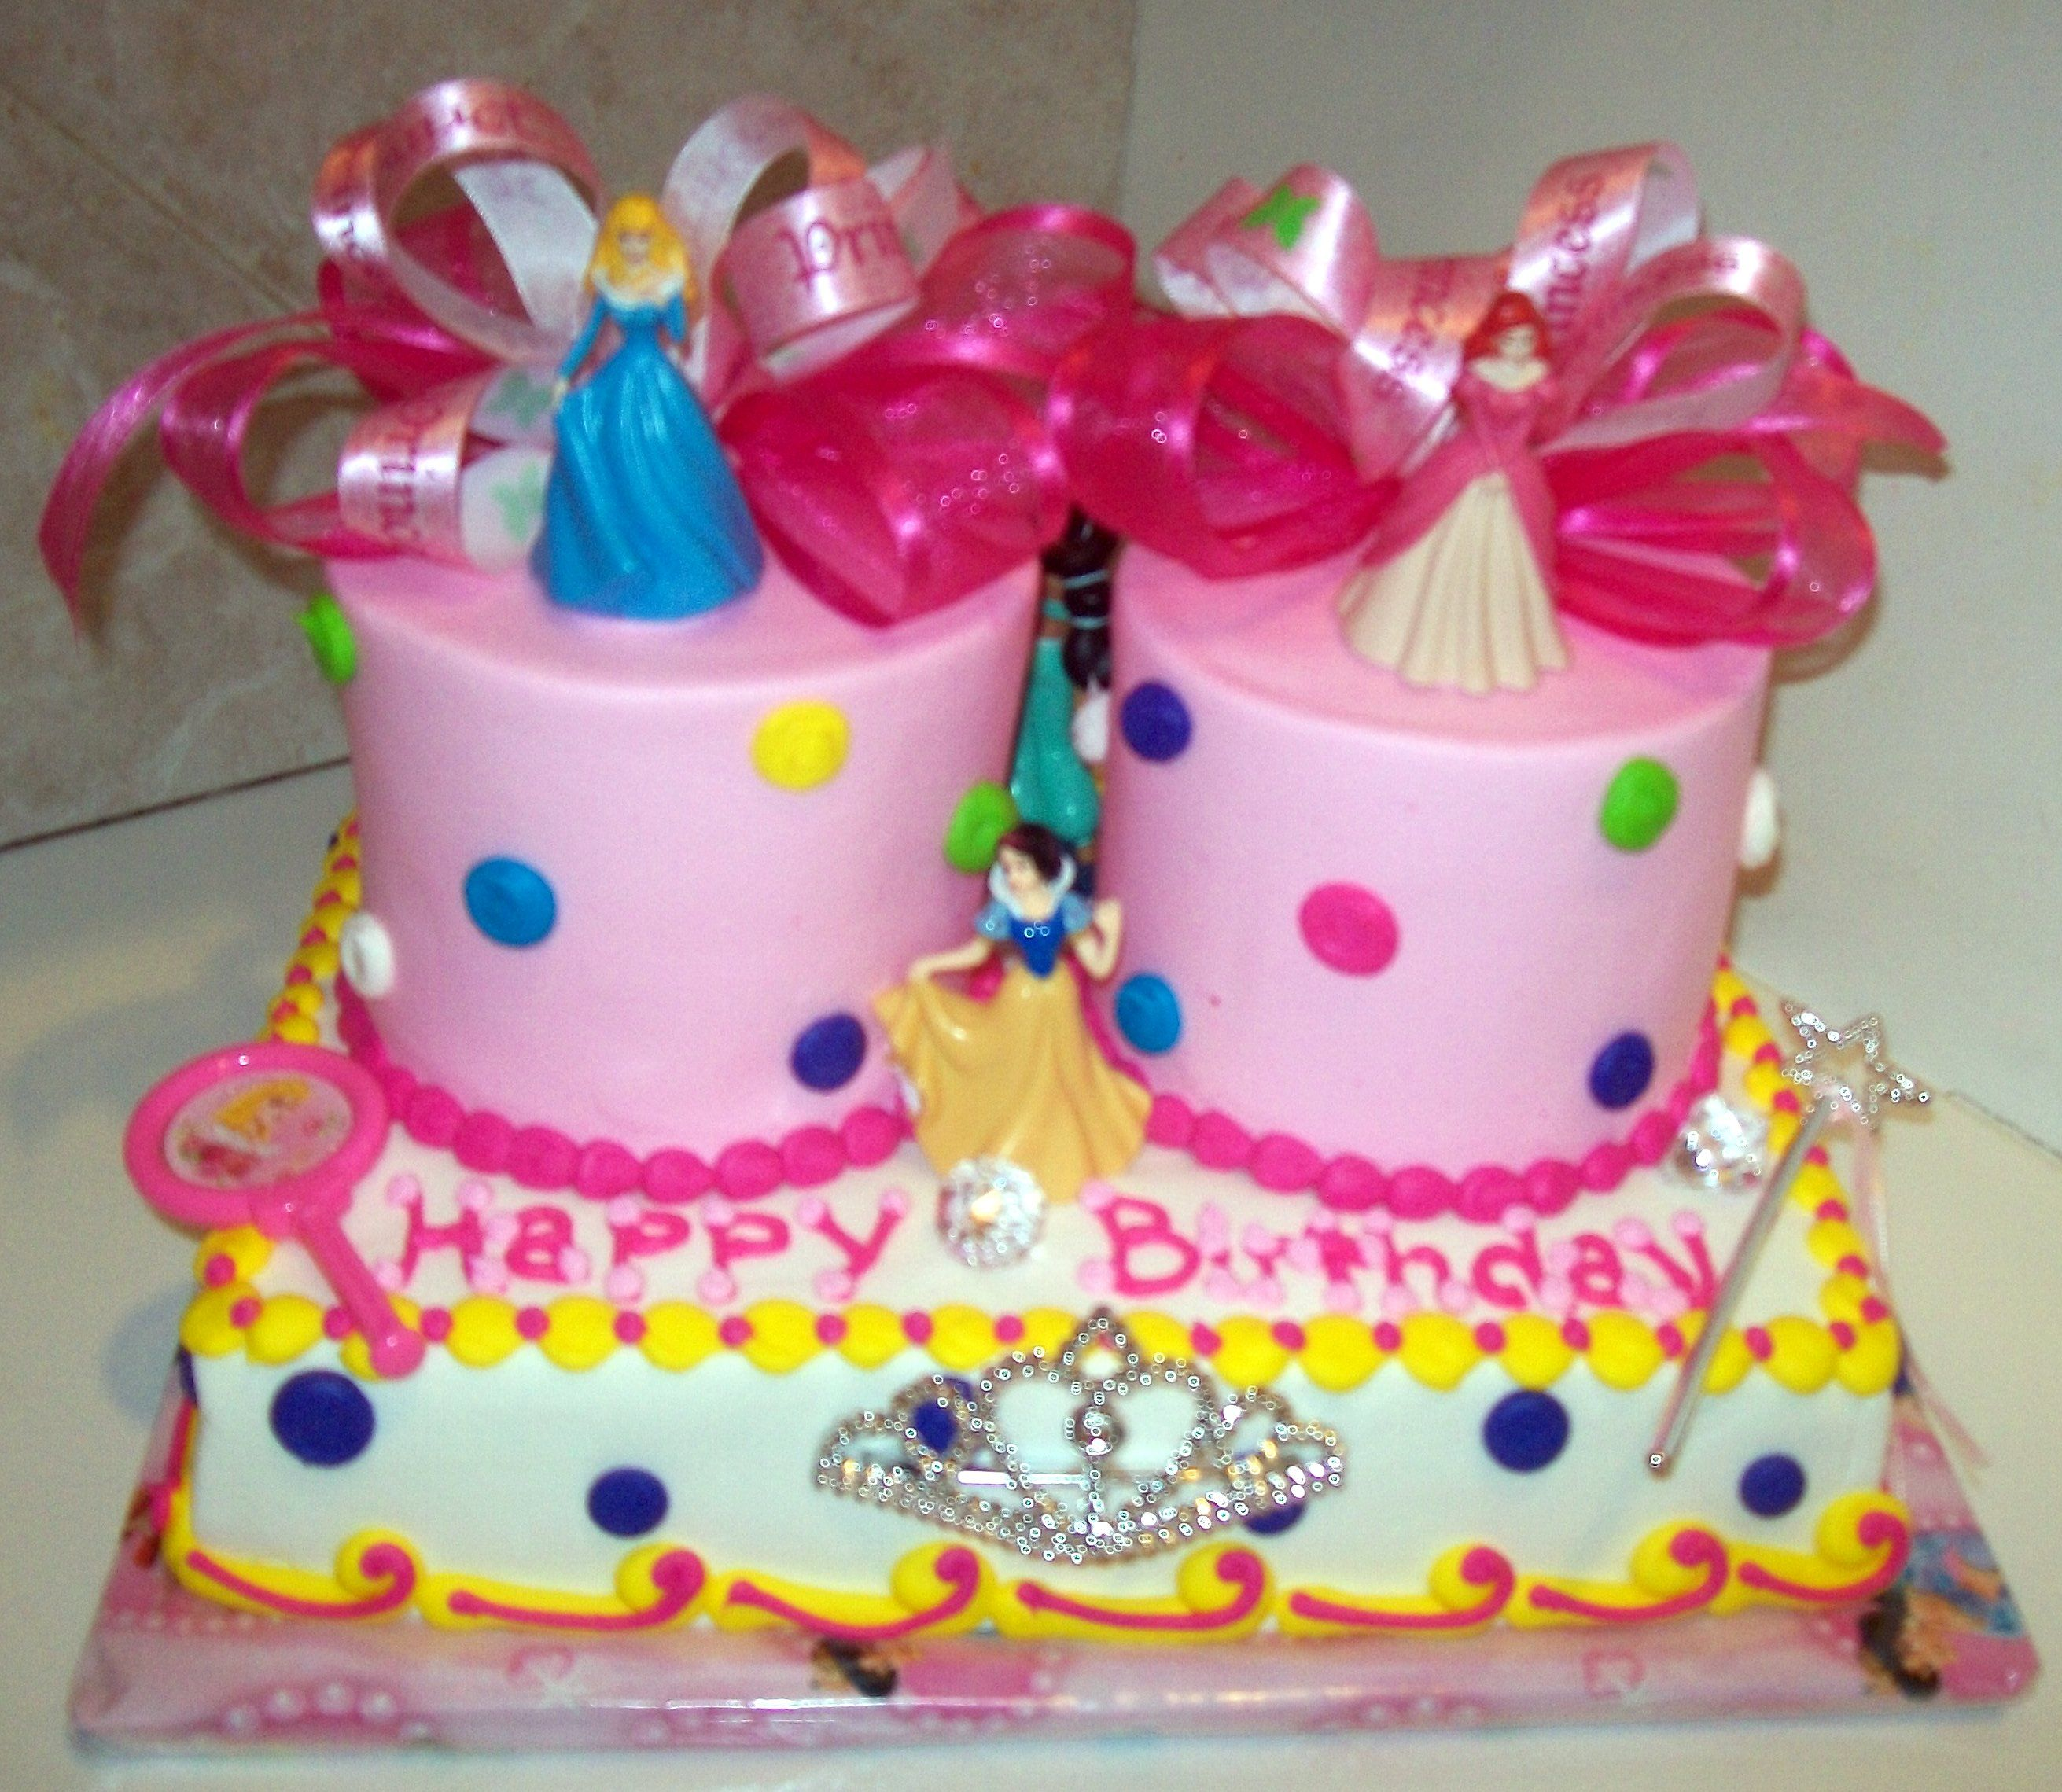 Pin by Amy Smith on cakes Pinterest Unique birthday cakes